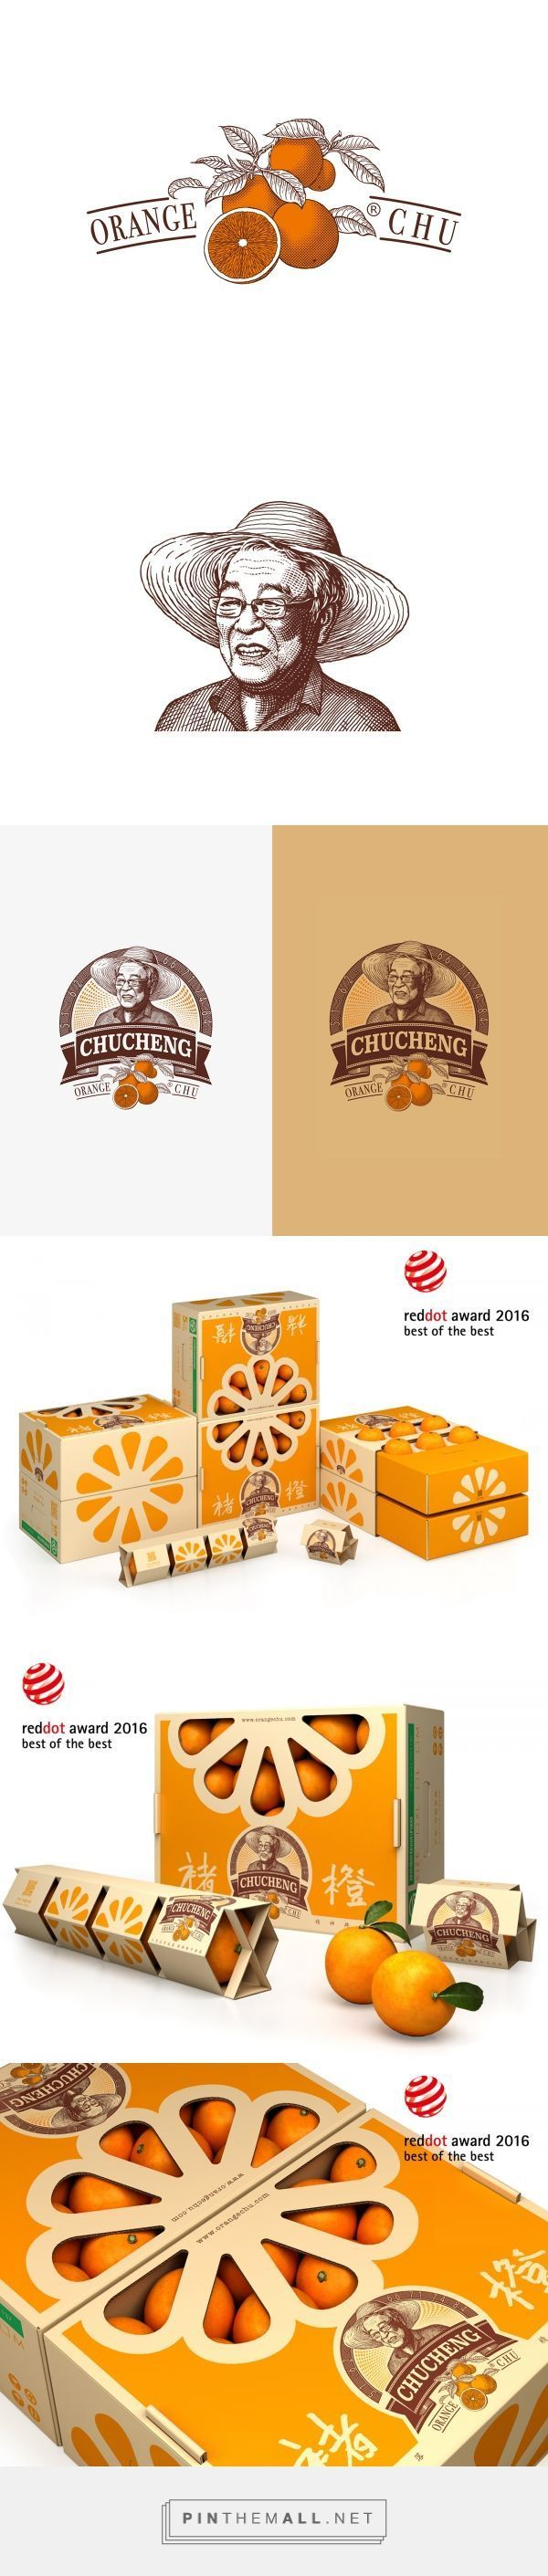 Chu's Orange Packaging and Logo Design by Tiger Pan | Fivestar Branding Agency – Design and Branding Agency